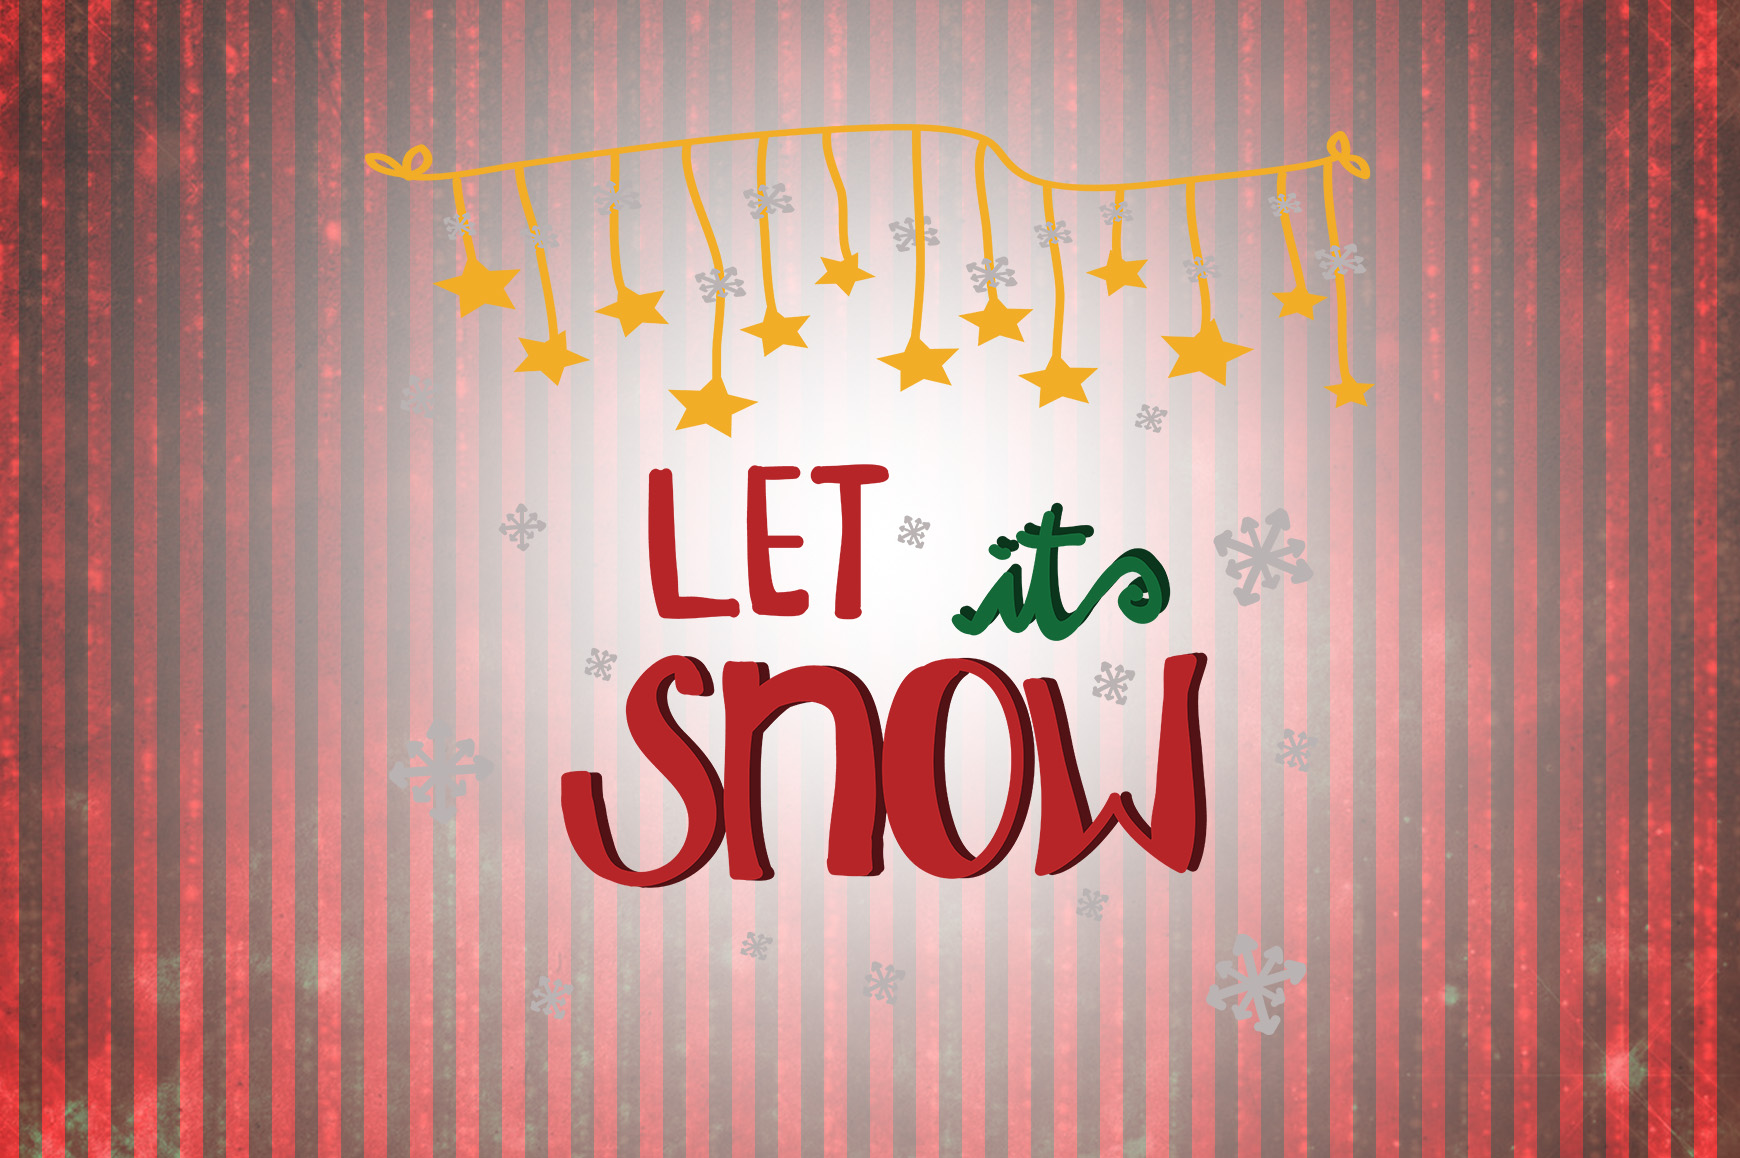 Download Free Let It Snow Christmas Quotes Graphic By Wienscollection for Cricut Explore, Silhouette and other cutting machines.